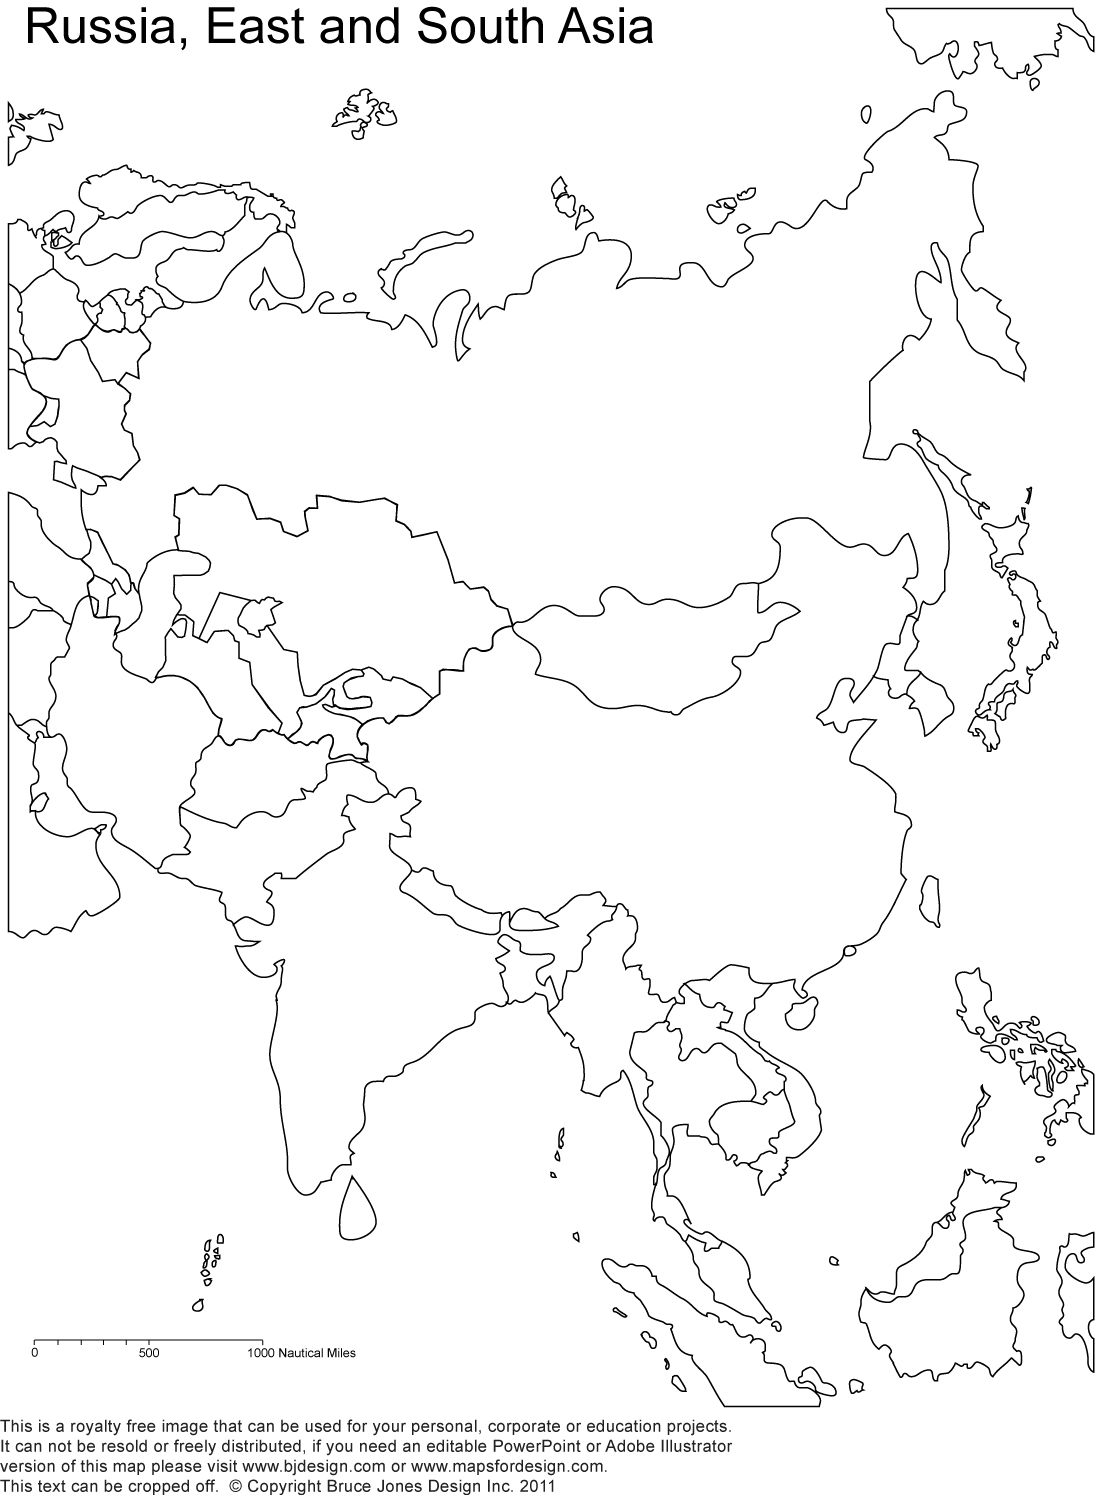 unmarked map of asia World Regional Printable Blank Maps Royalty Free Jpg